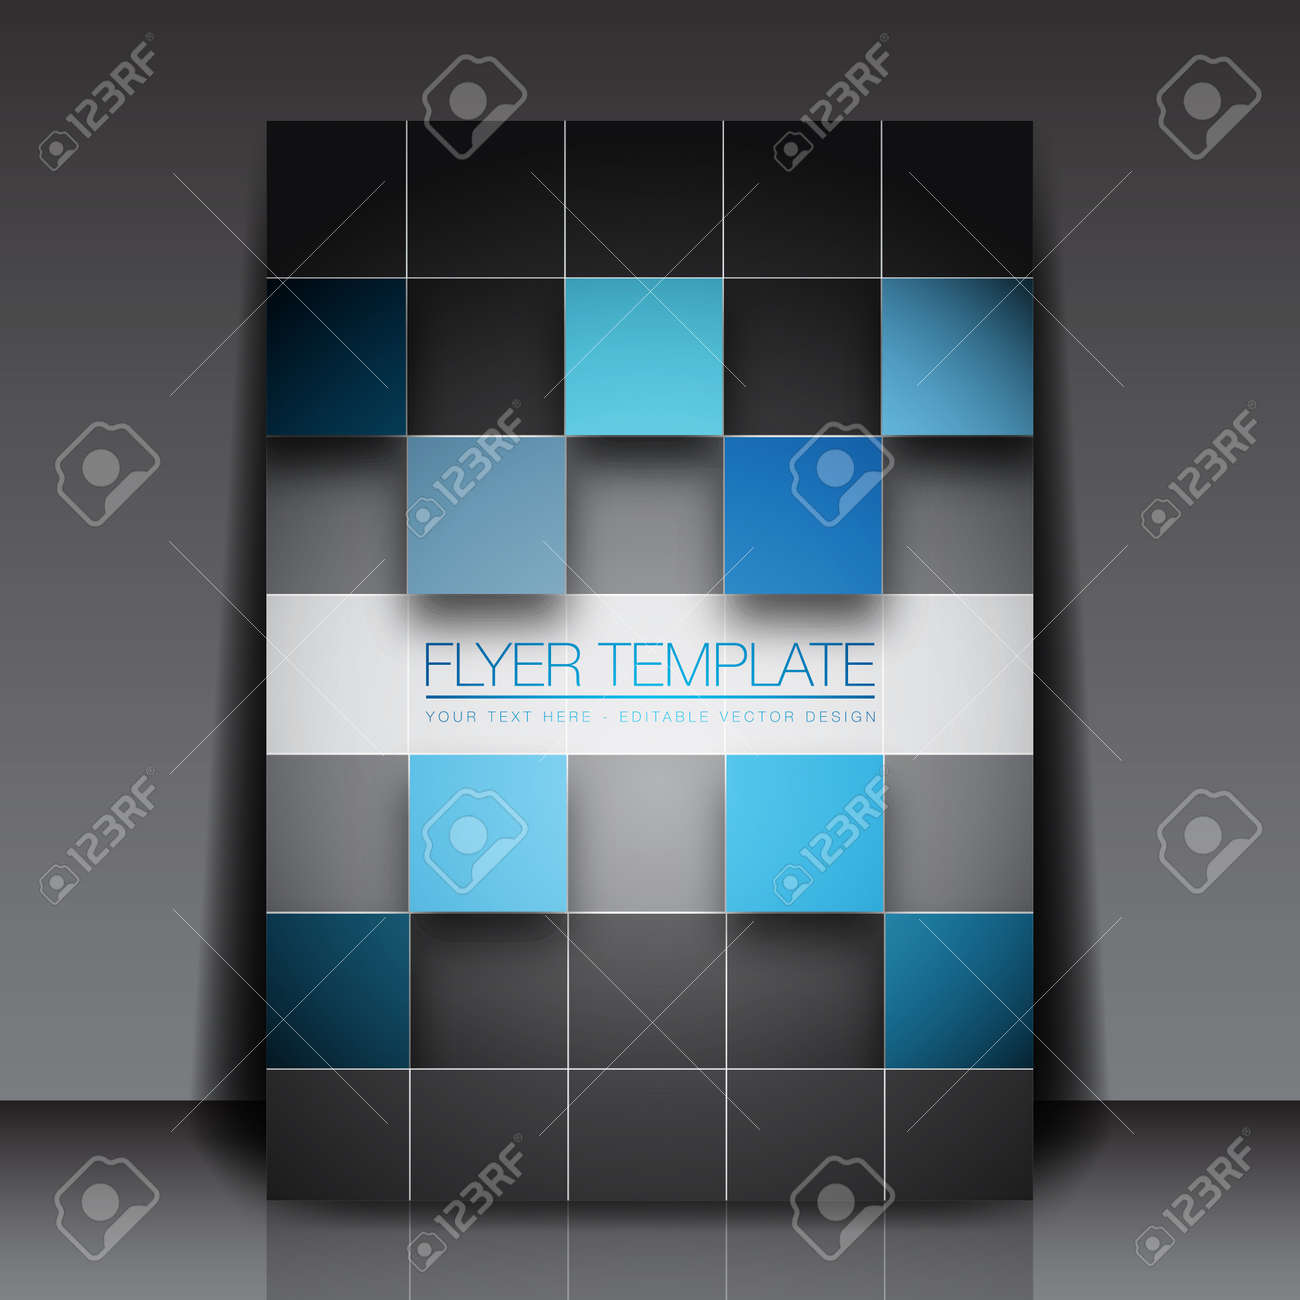 3d squares business flyer template royalty cliparts 3d squares business flyer template stock vector 15282624